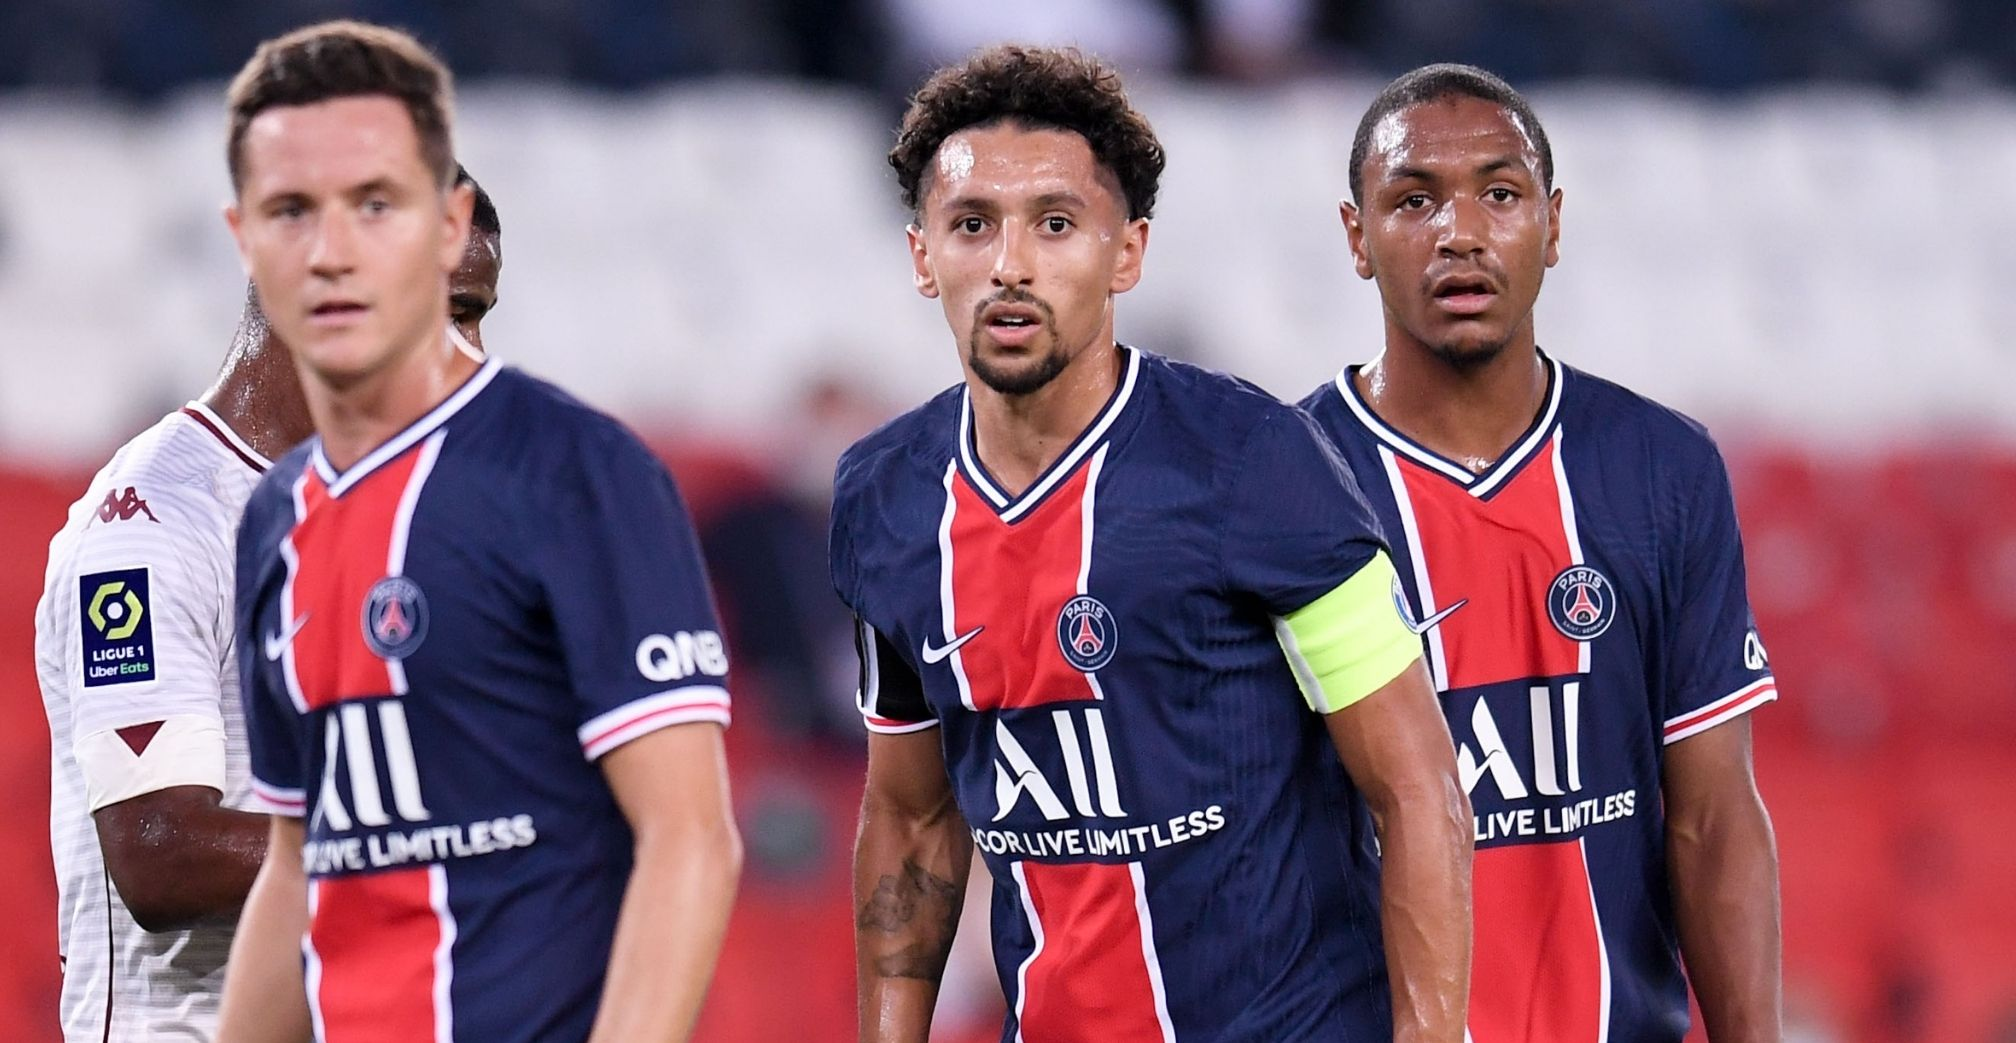 Nimes Psg Match Preview Tuchel To Shuffle With Marquinhos